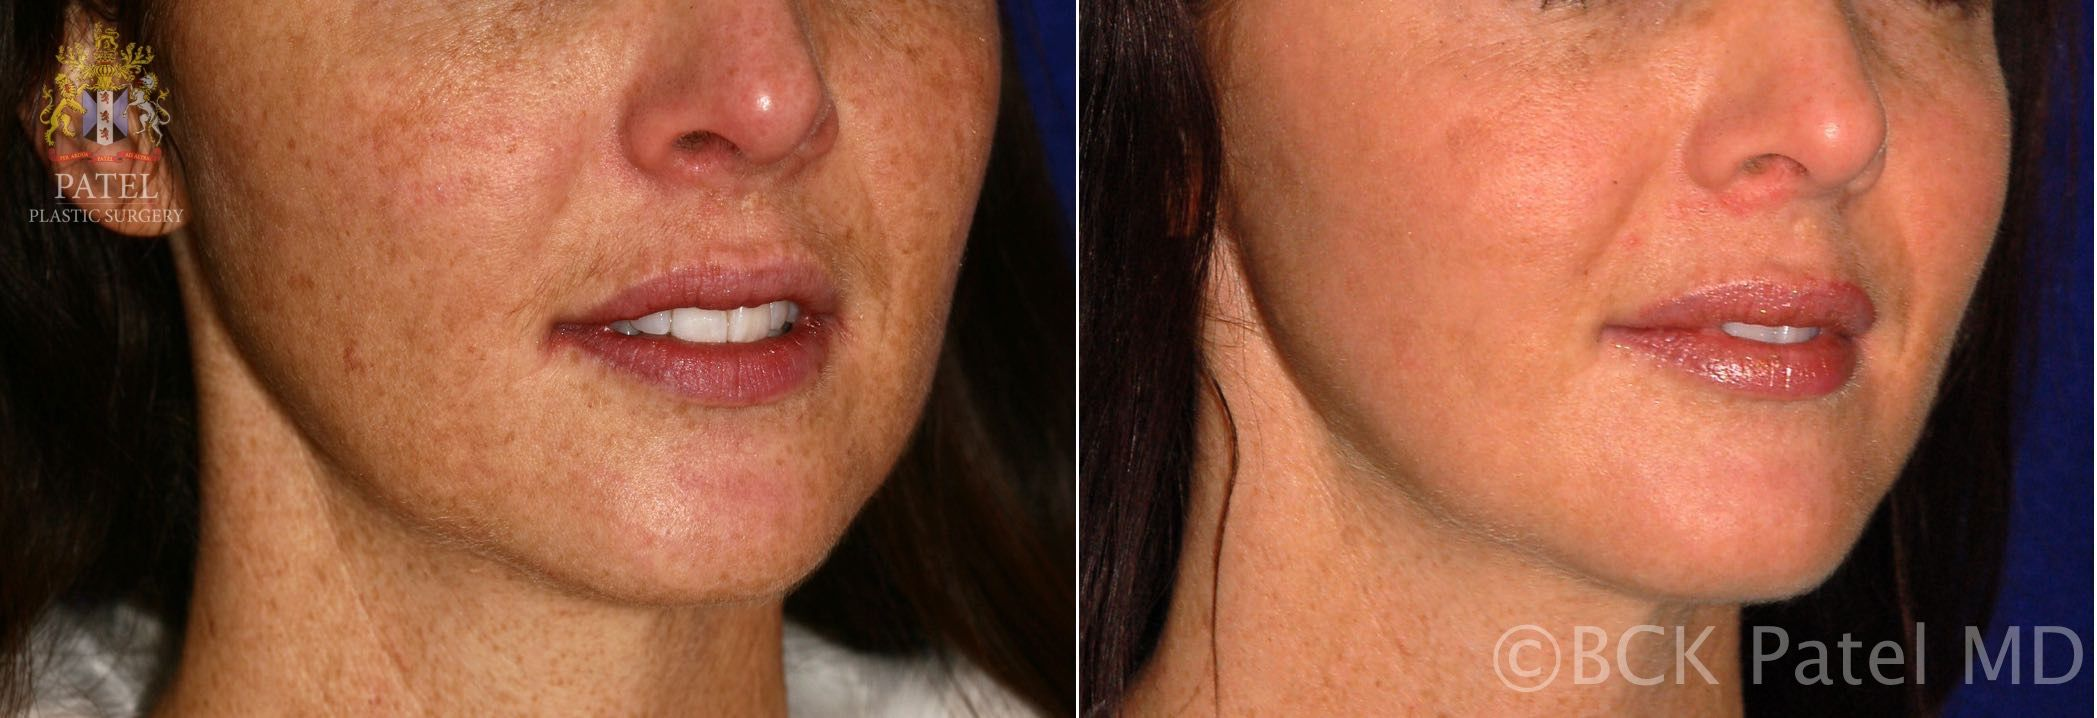 englishsurgeon.com. Photos show before-and-after of advanced fotofacial laser treatments. BCK Patel MD, FRCS